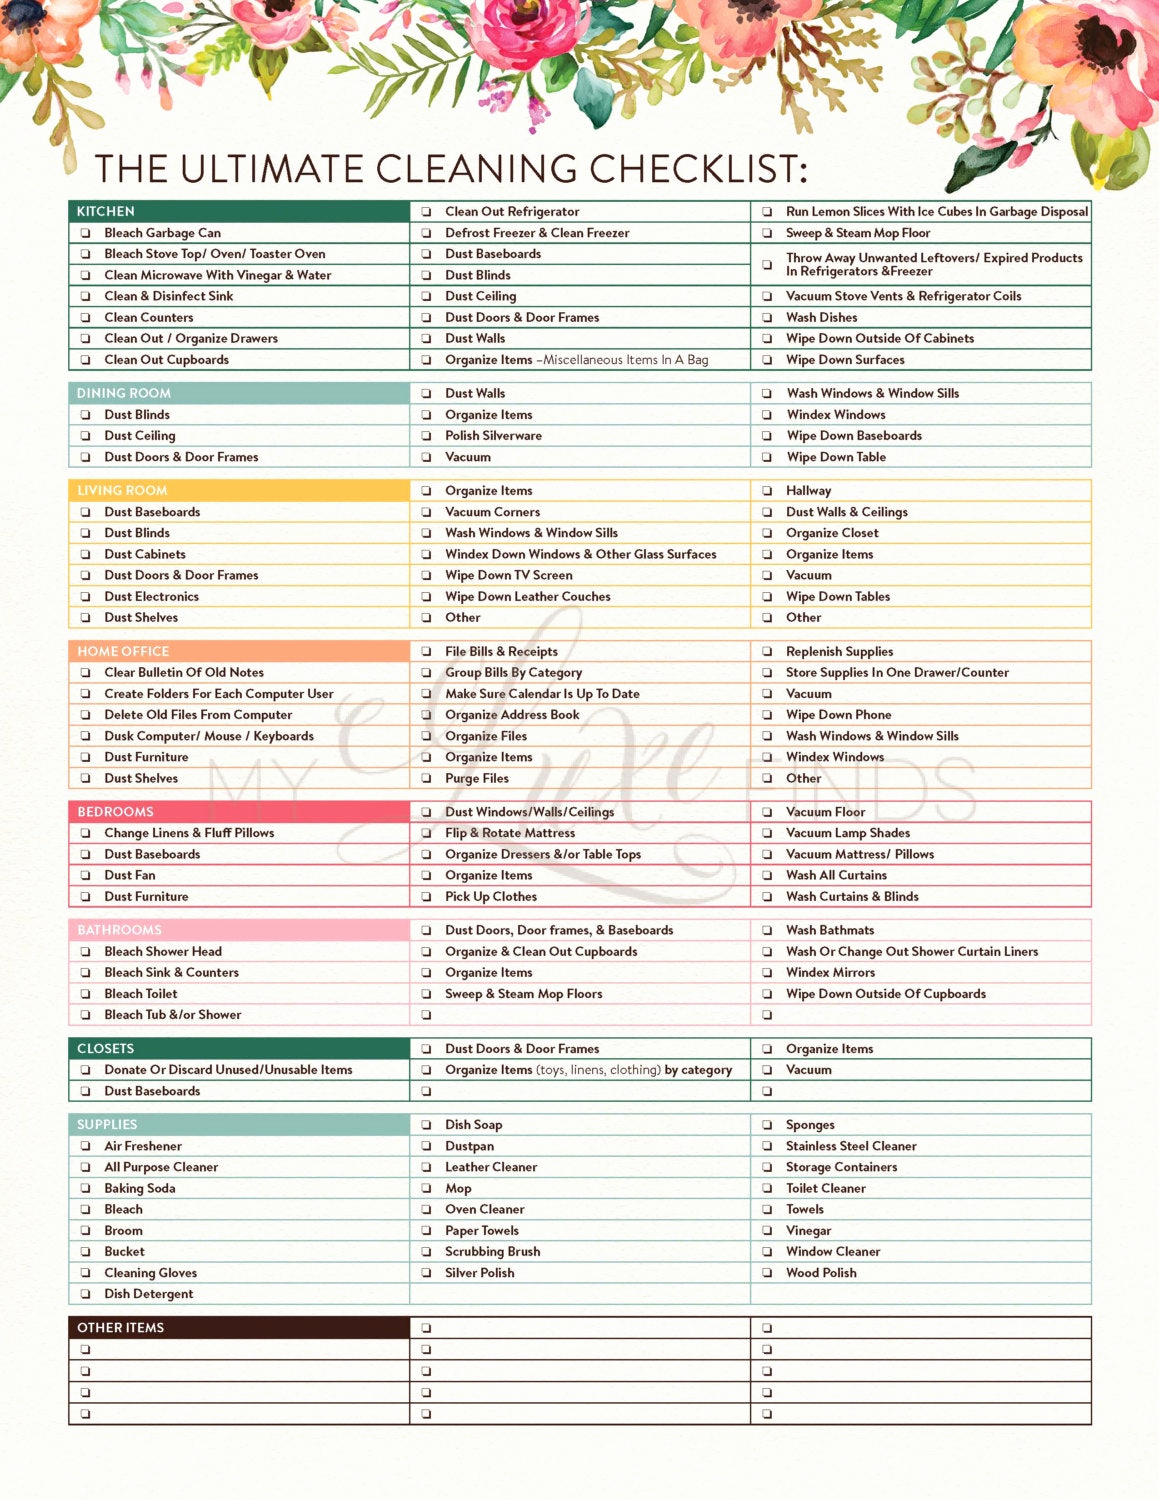 House Cleaning Checklist Template Best Of the Ultimate House Cleaning Checklist Printable Pdf